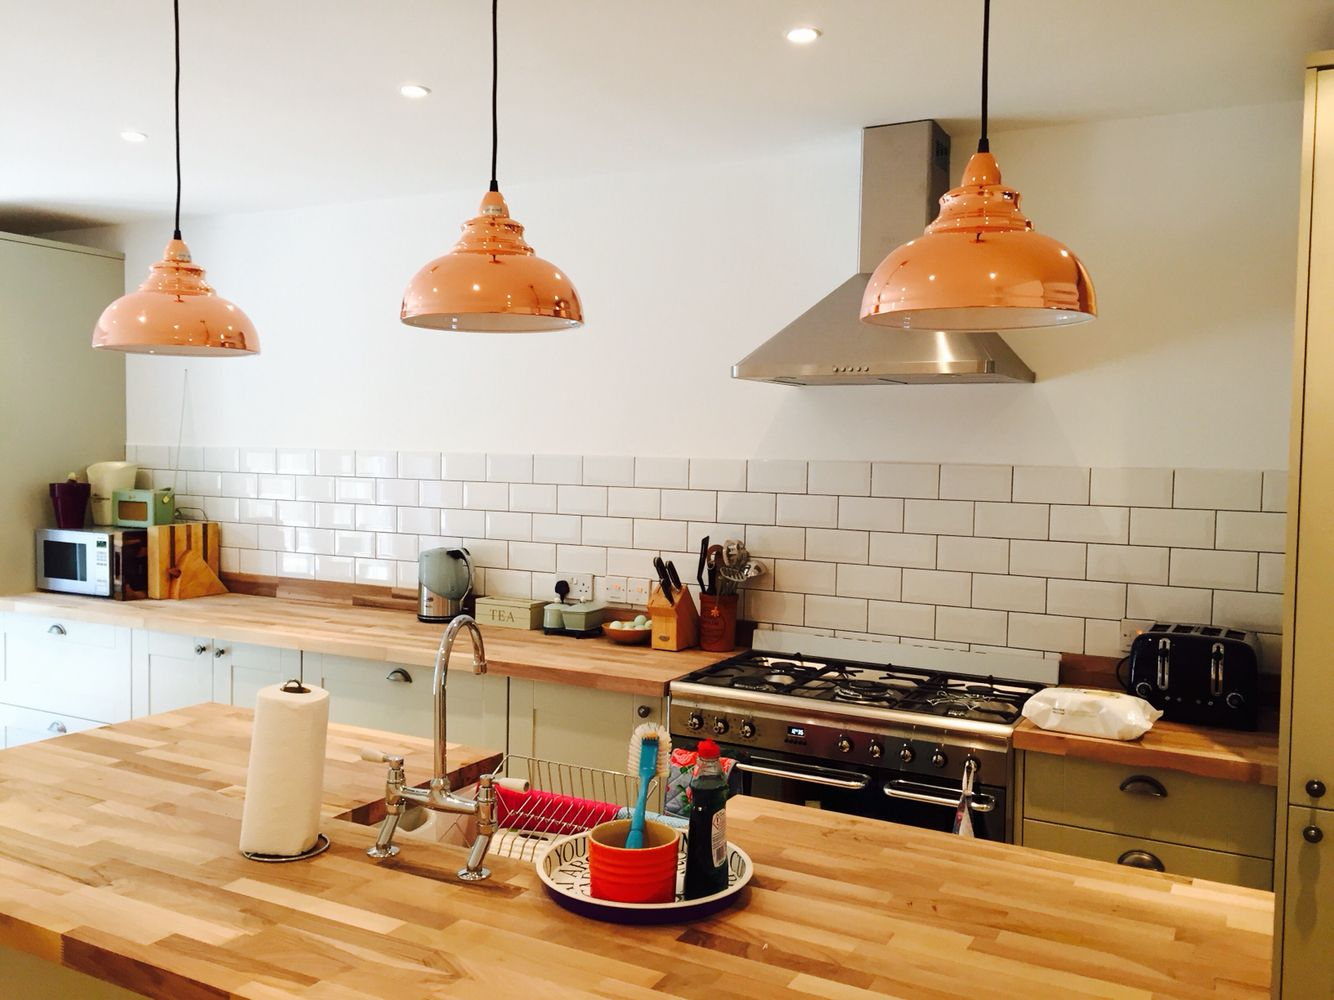 My Gorgeous Kitchen Subway Metro Tile Howdens Shaker Style Grey Cabinets Copper Hanging Lighting Island Walnut Counter Range Cooker